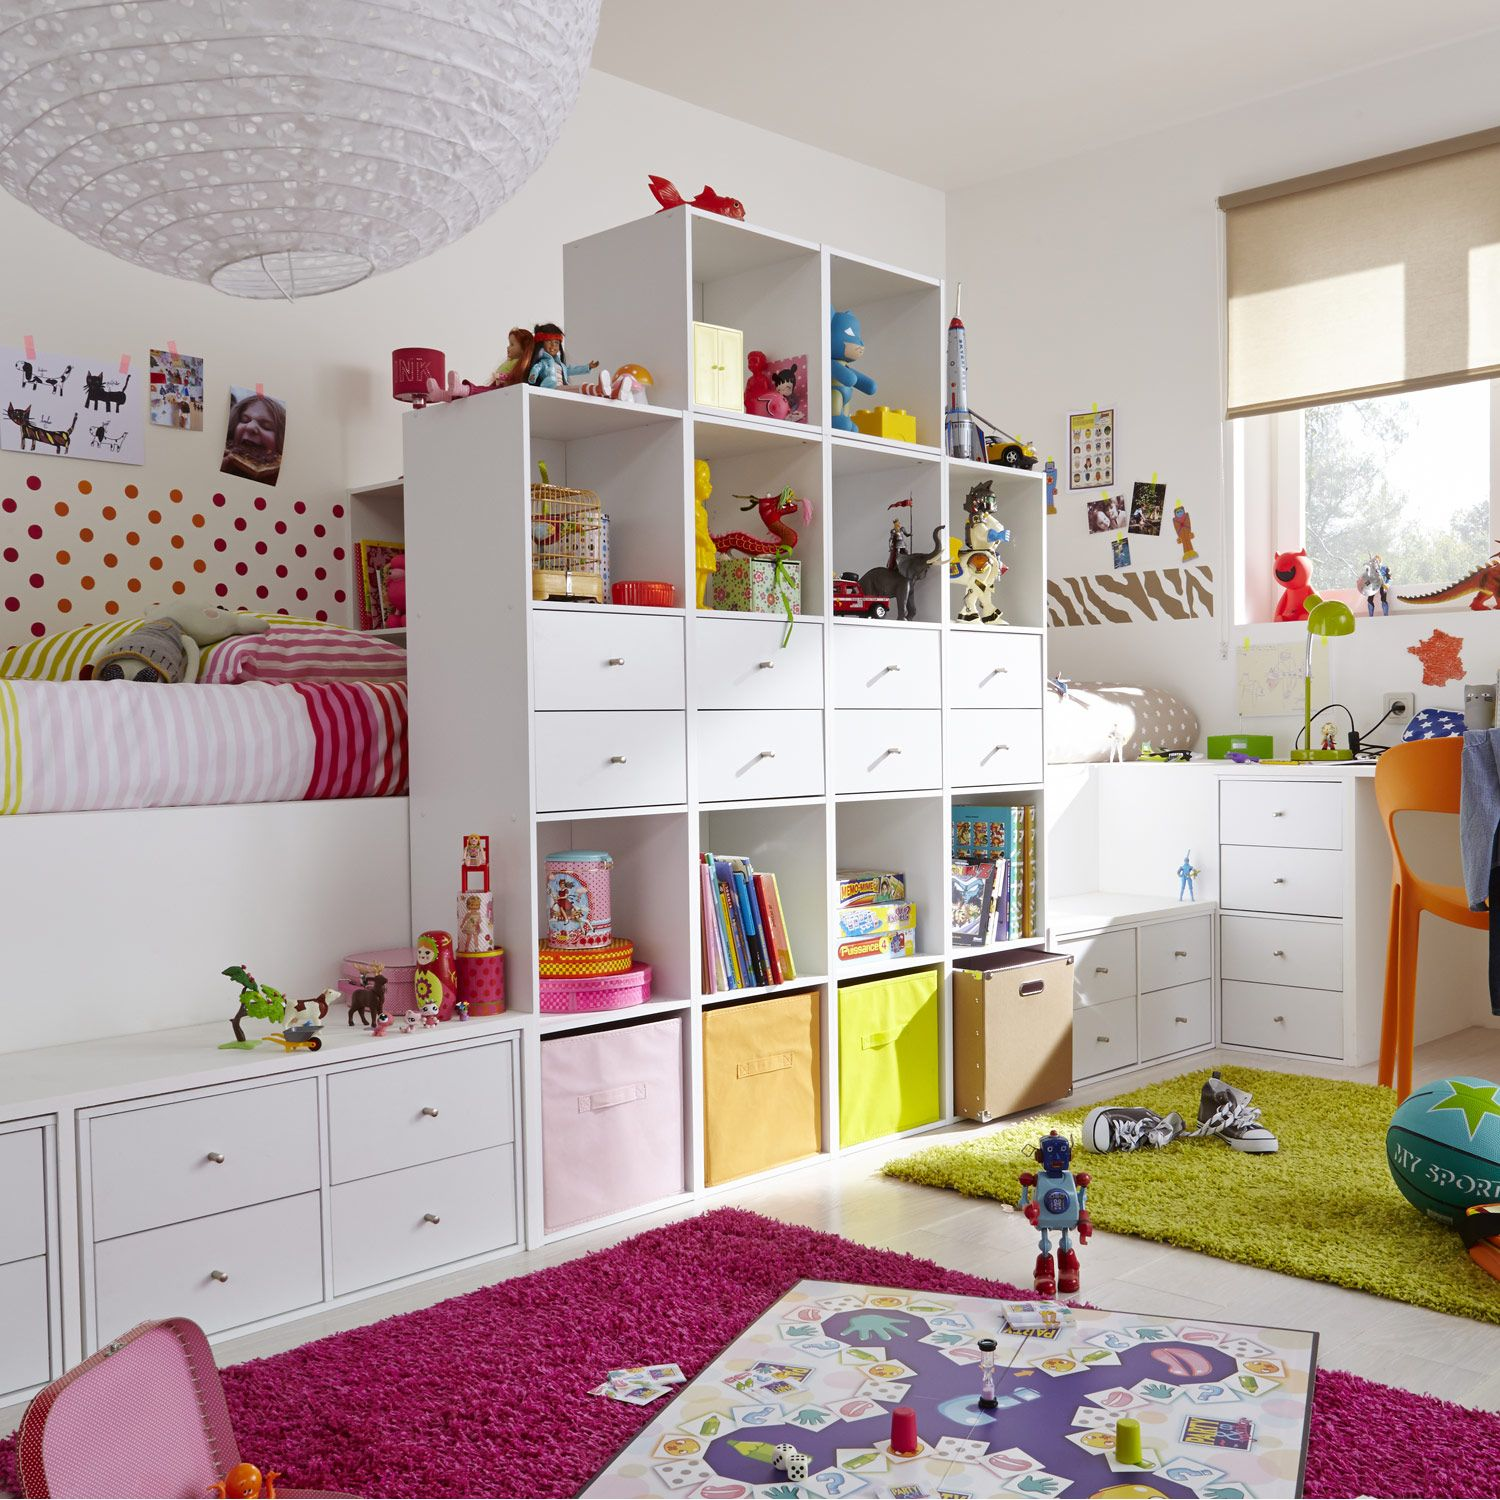 Am nagement d coratif multikaz 32 chambre d 39 enfant leroy for Amenagement chambre enfant